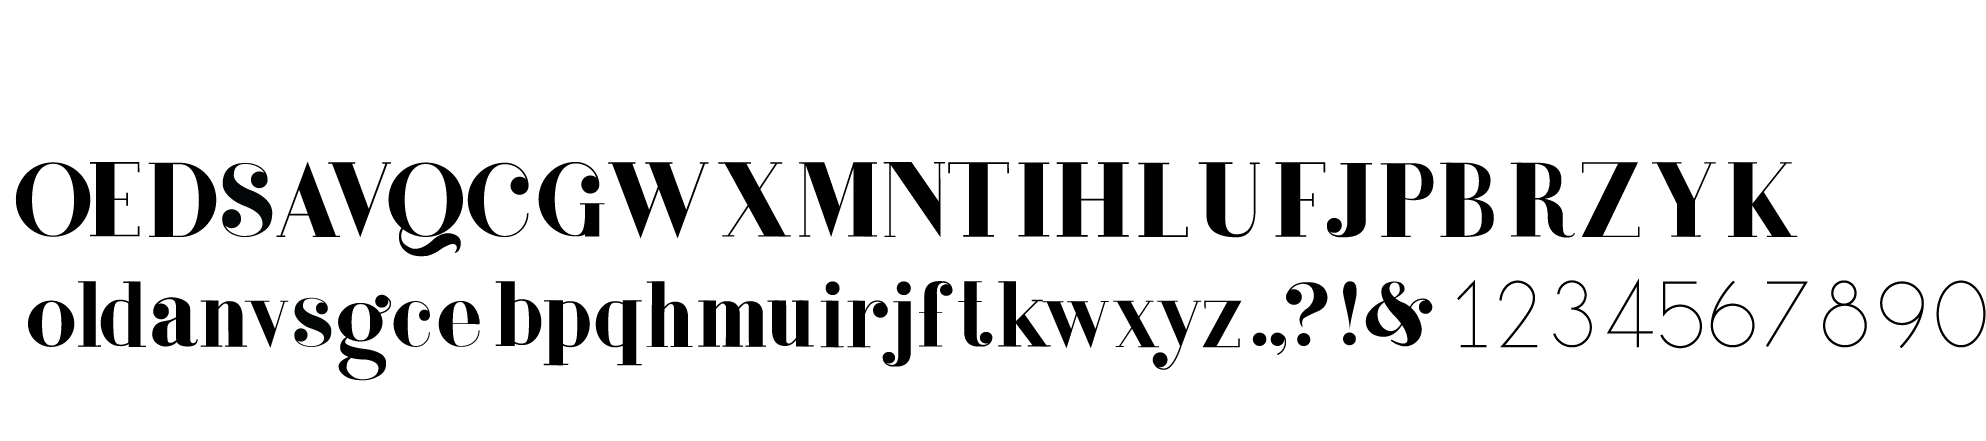 Lucille Font | Hand-built in Adobe